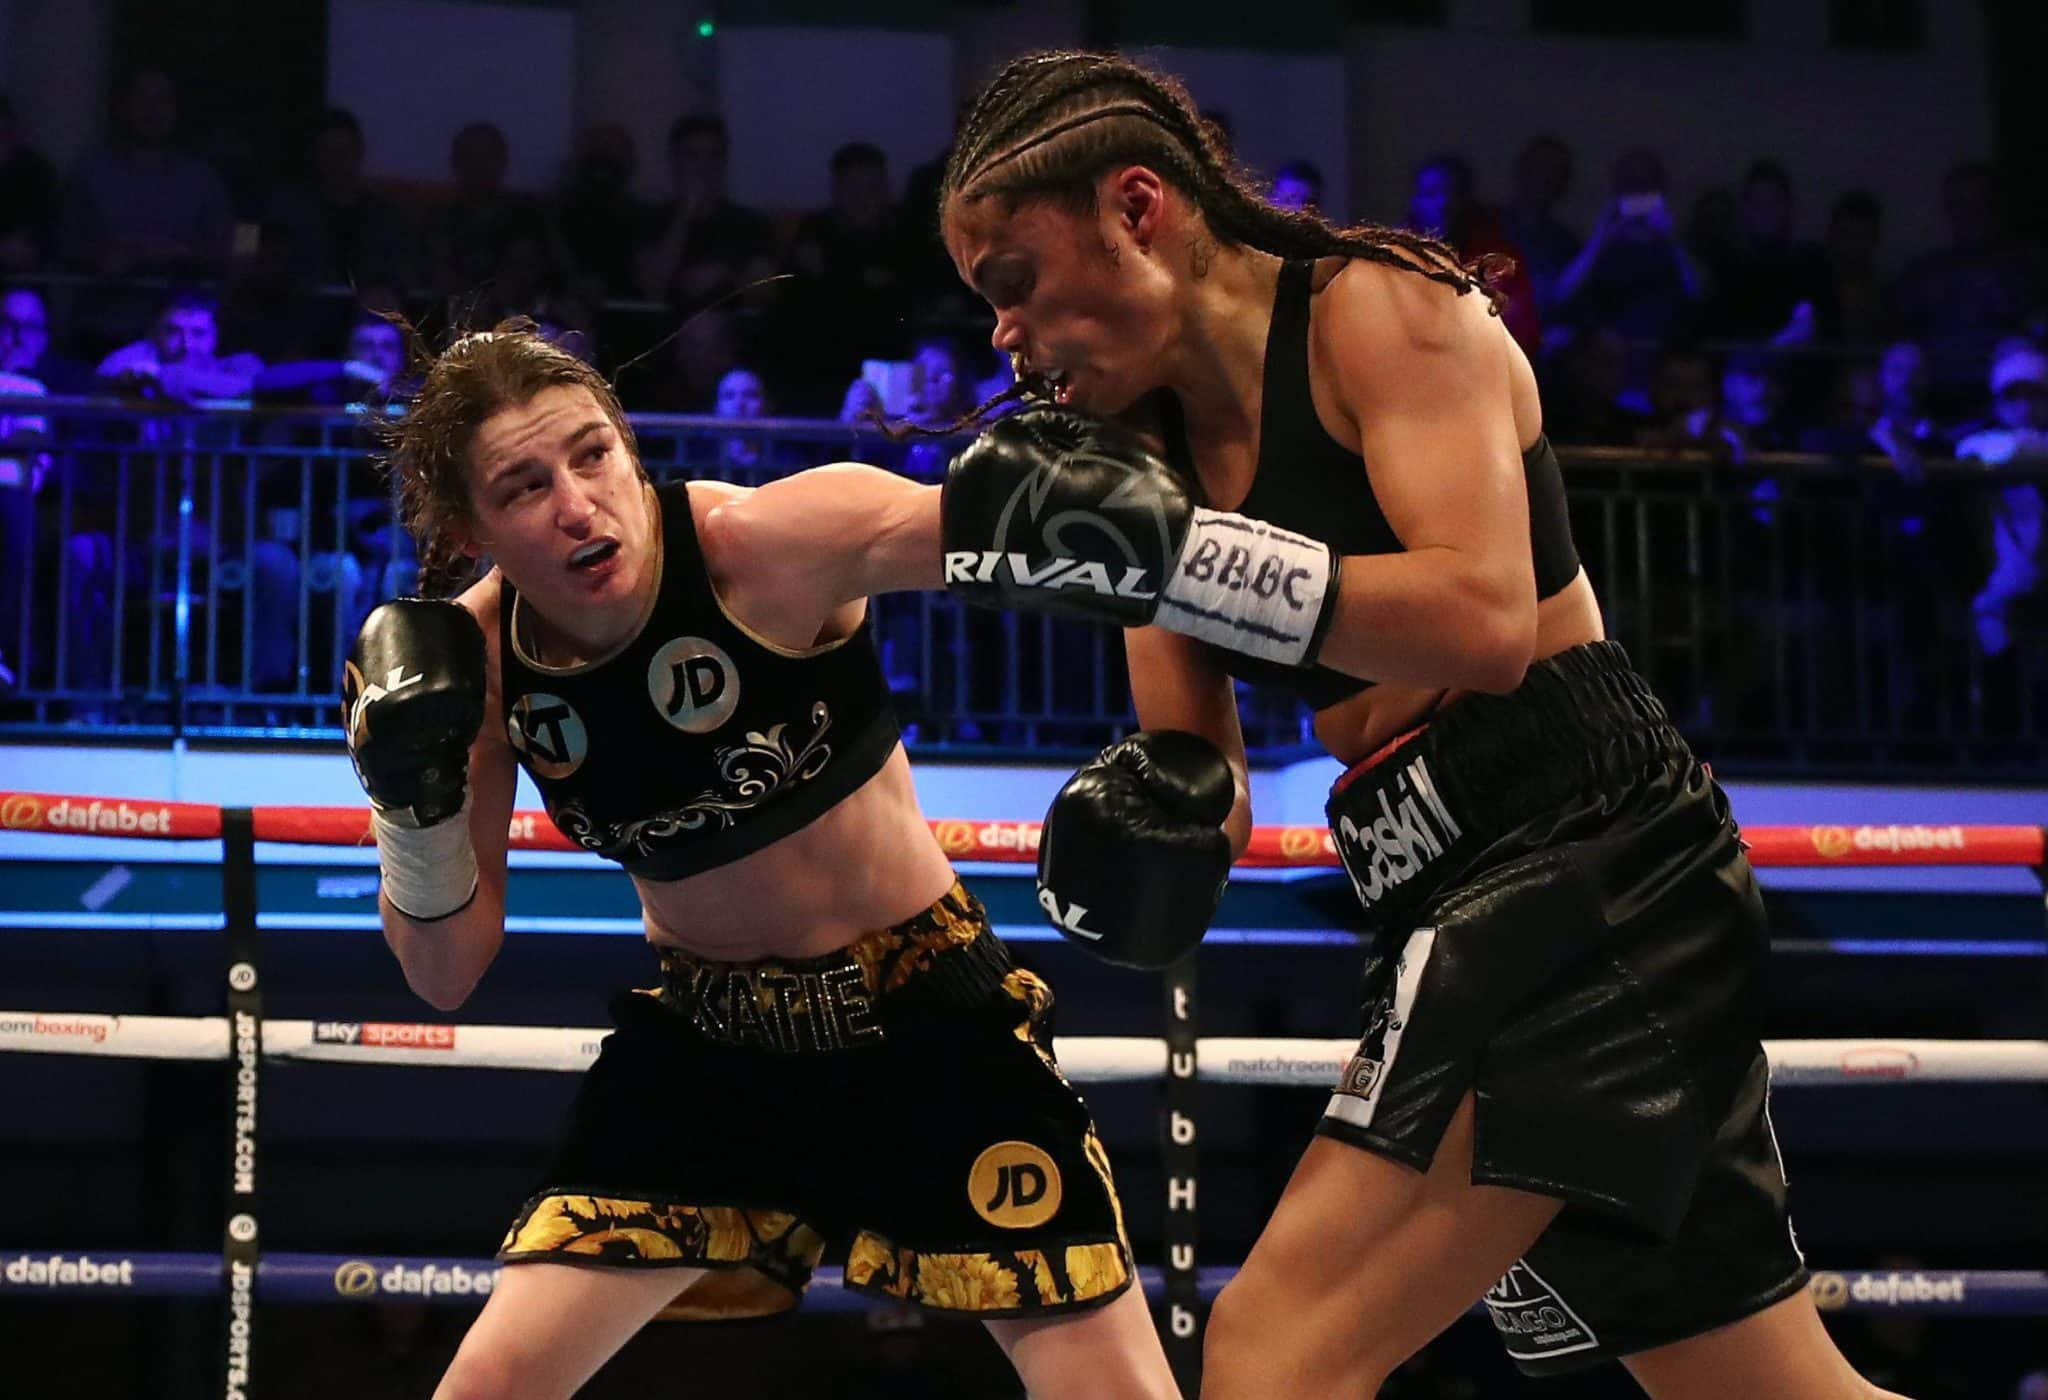 Katie Taylor Outpointed Jessica Mccaskill Over 10 Tough Rounds In Their First Encounter